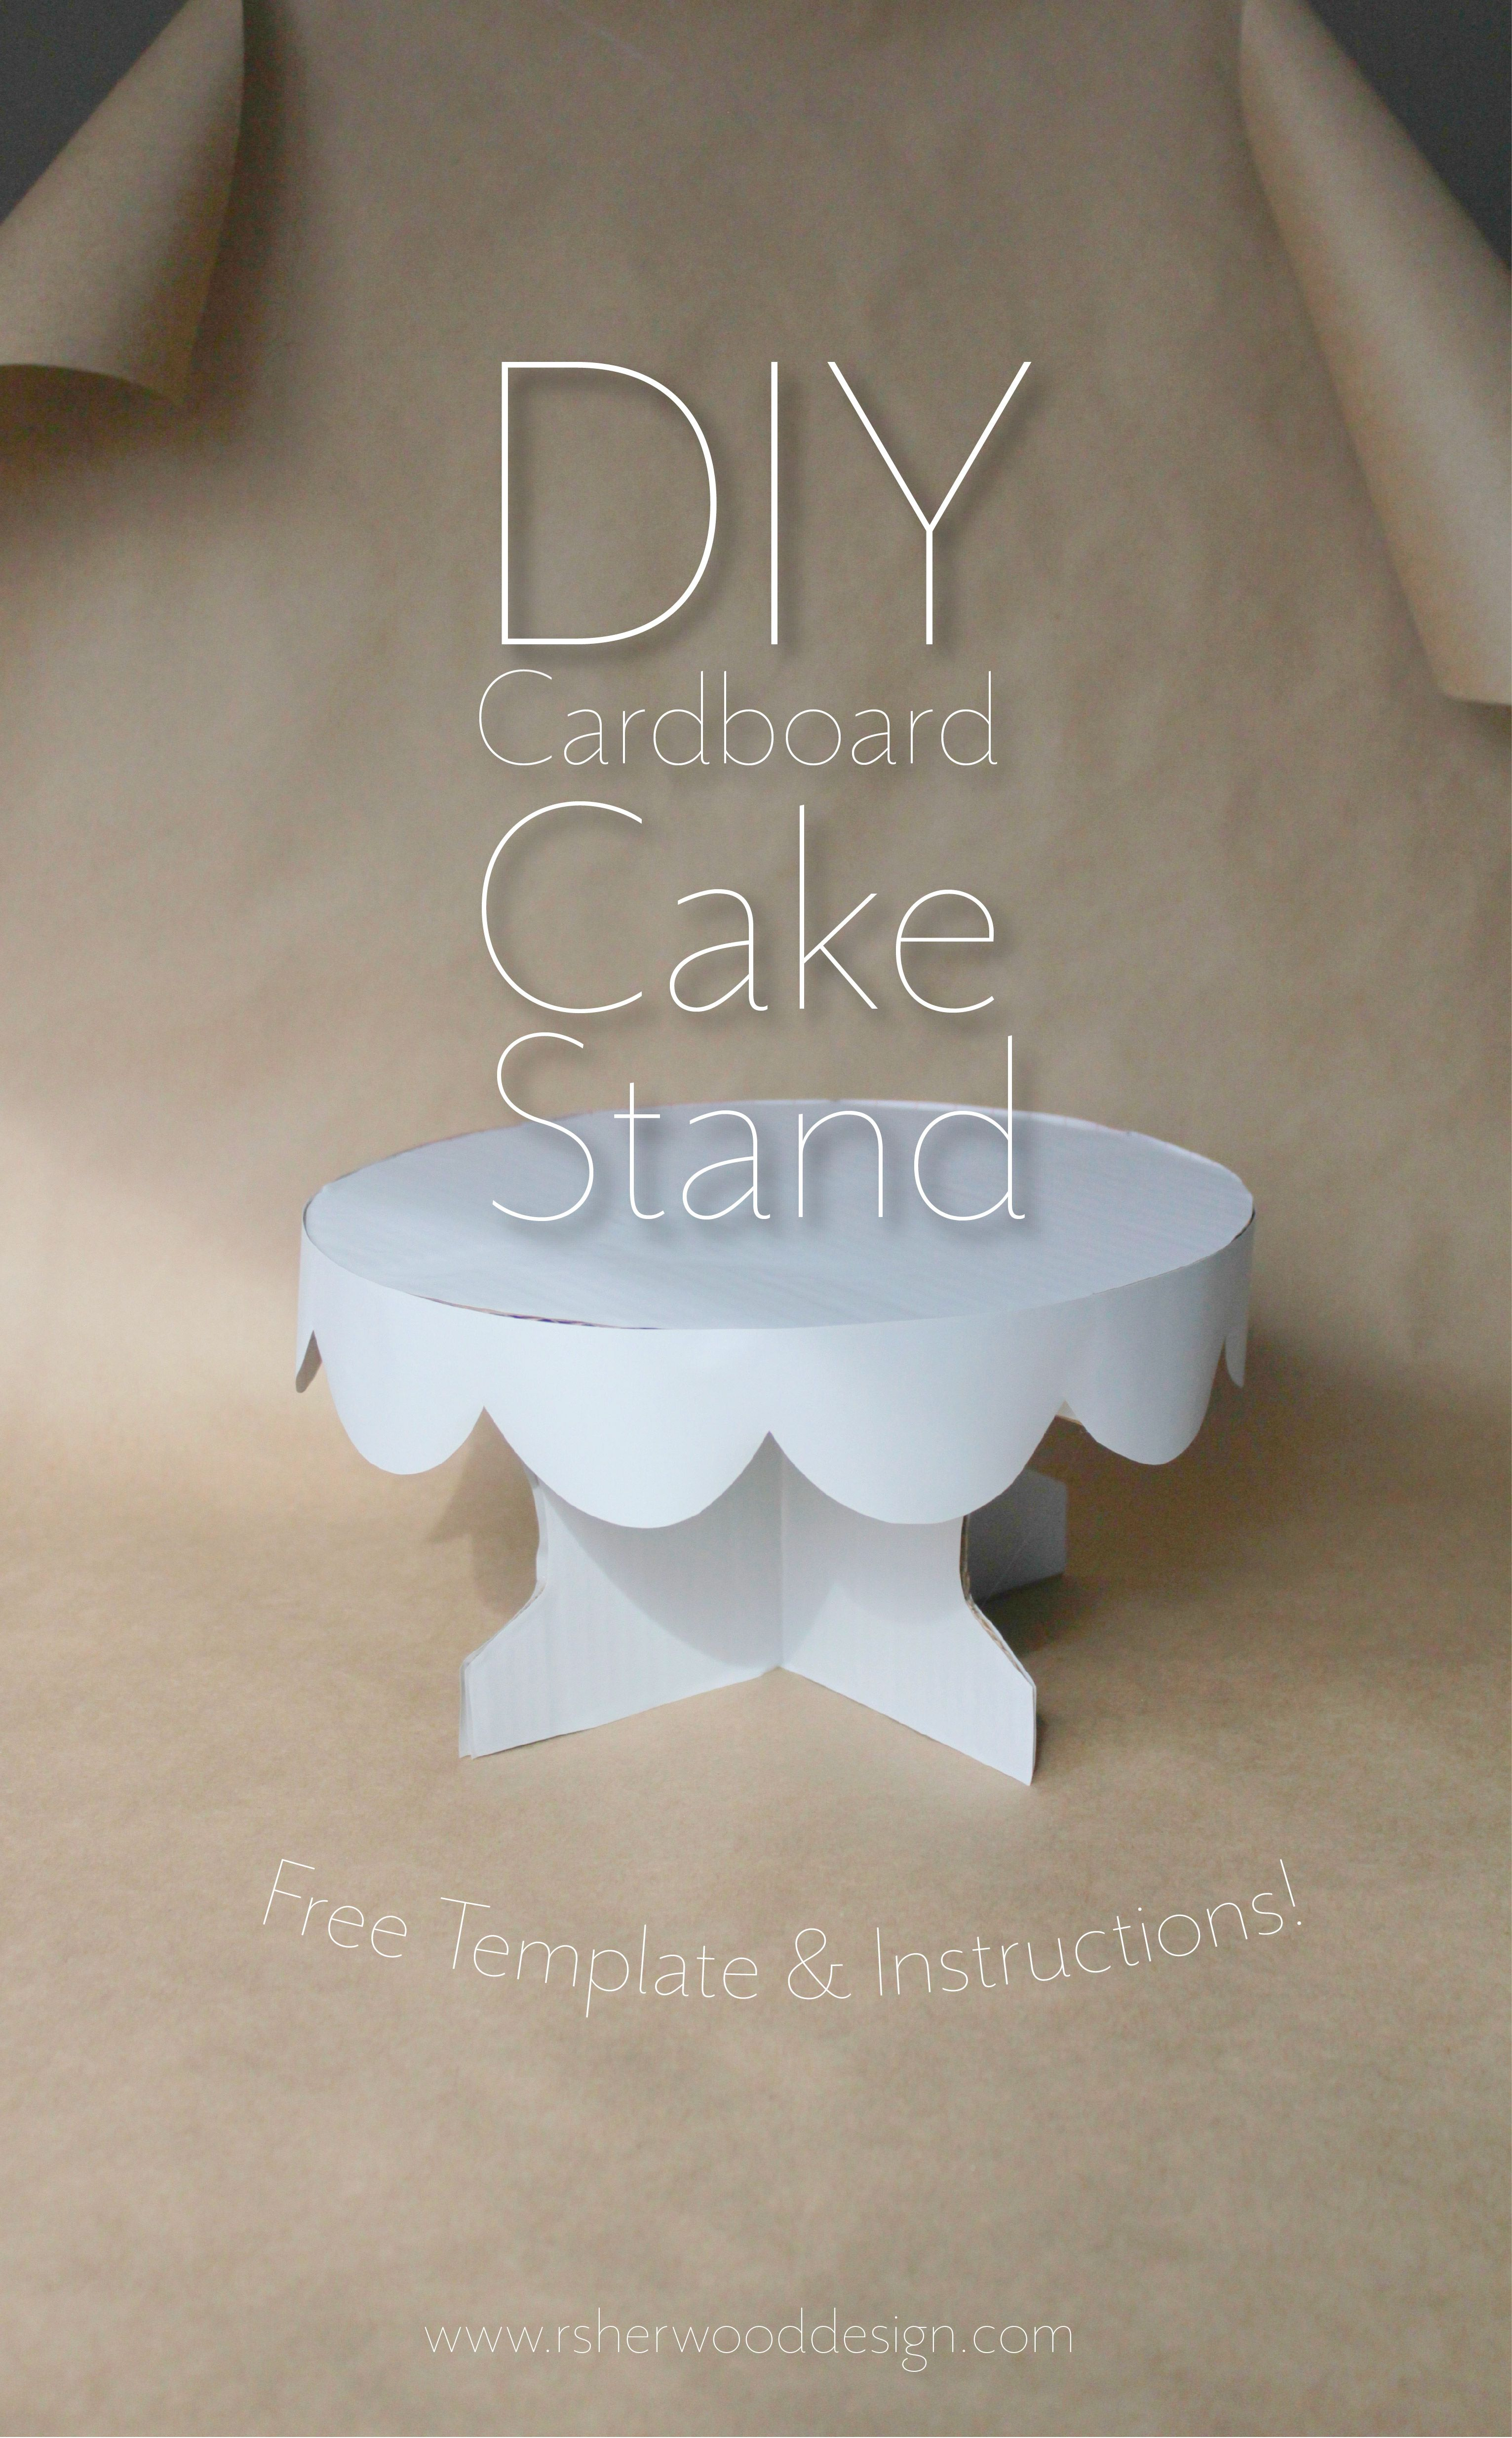 Diy Cardboard Cake Stand With Images Cardboard Cake Stand